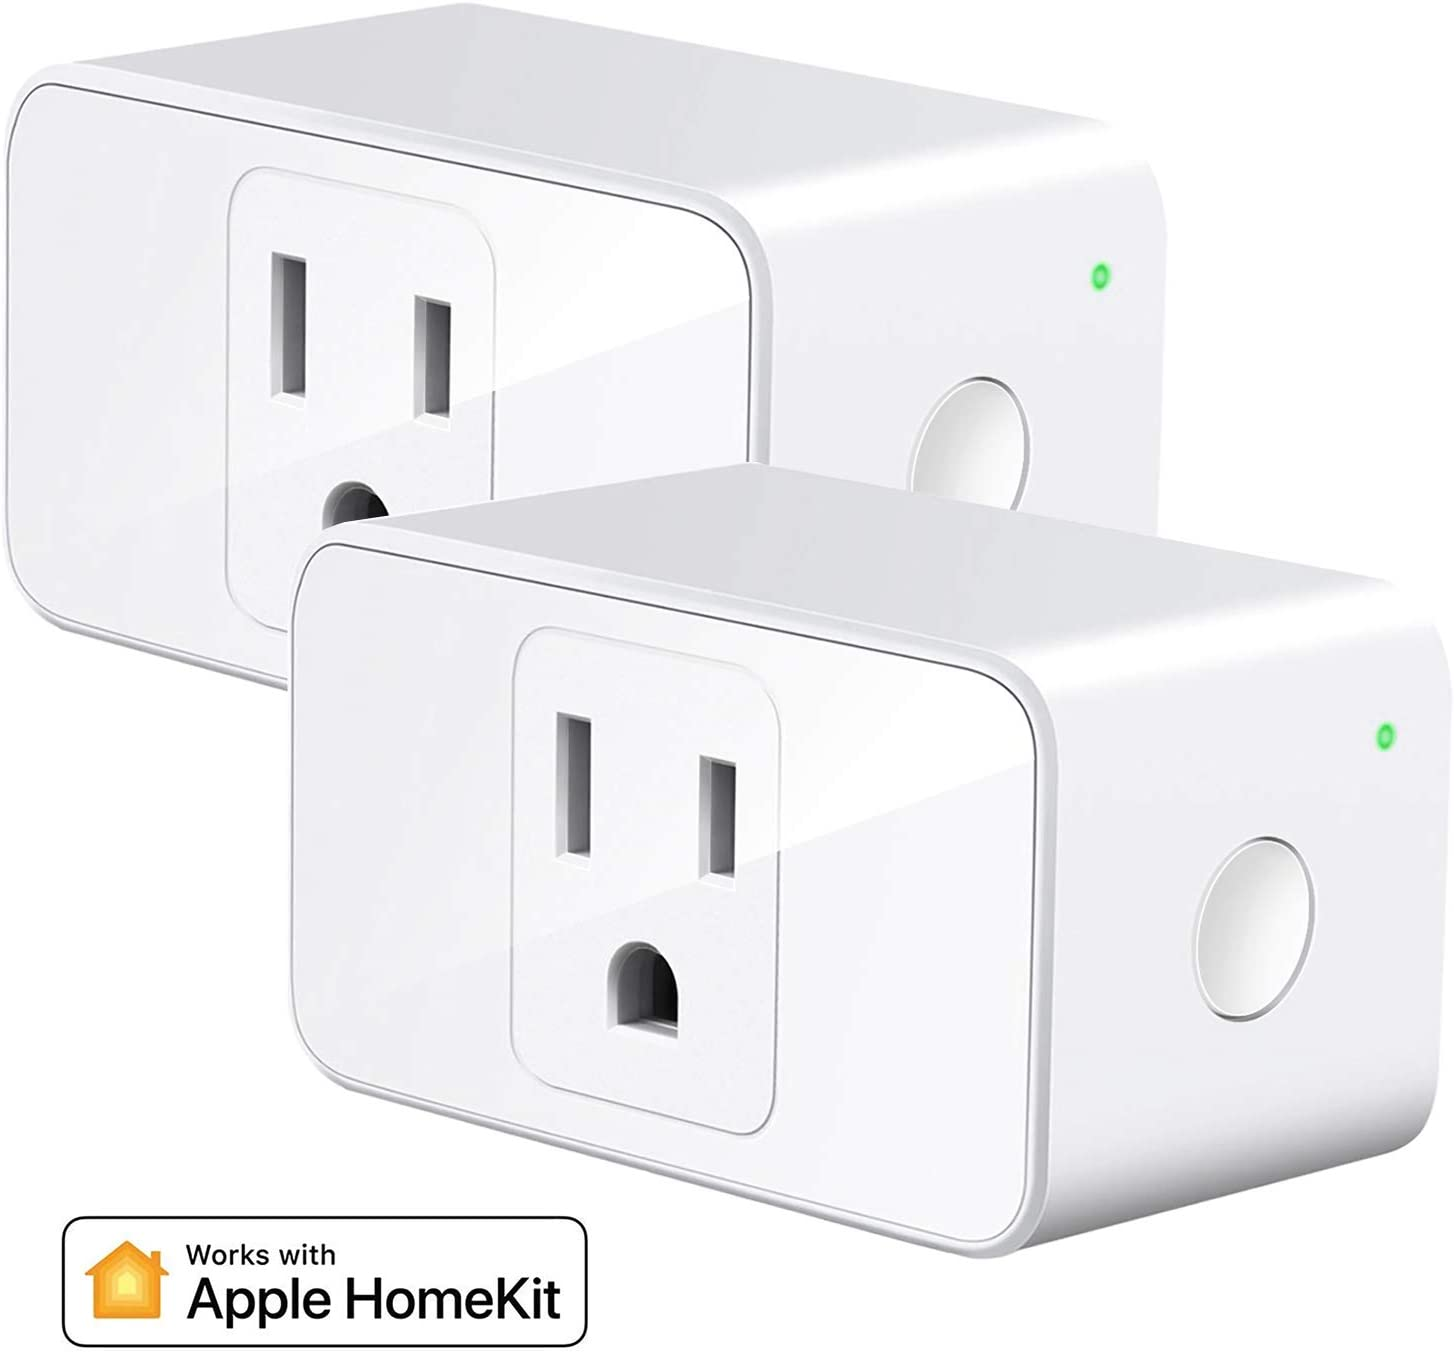 Meross Smart Plug Mini, 16A & Reliable WiFi, Support Apple HomeKit, Siri, Alexa, Echo, Google Assistant, Nest Hub, App Control, Timer, No Hub Needed, 2 Pack